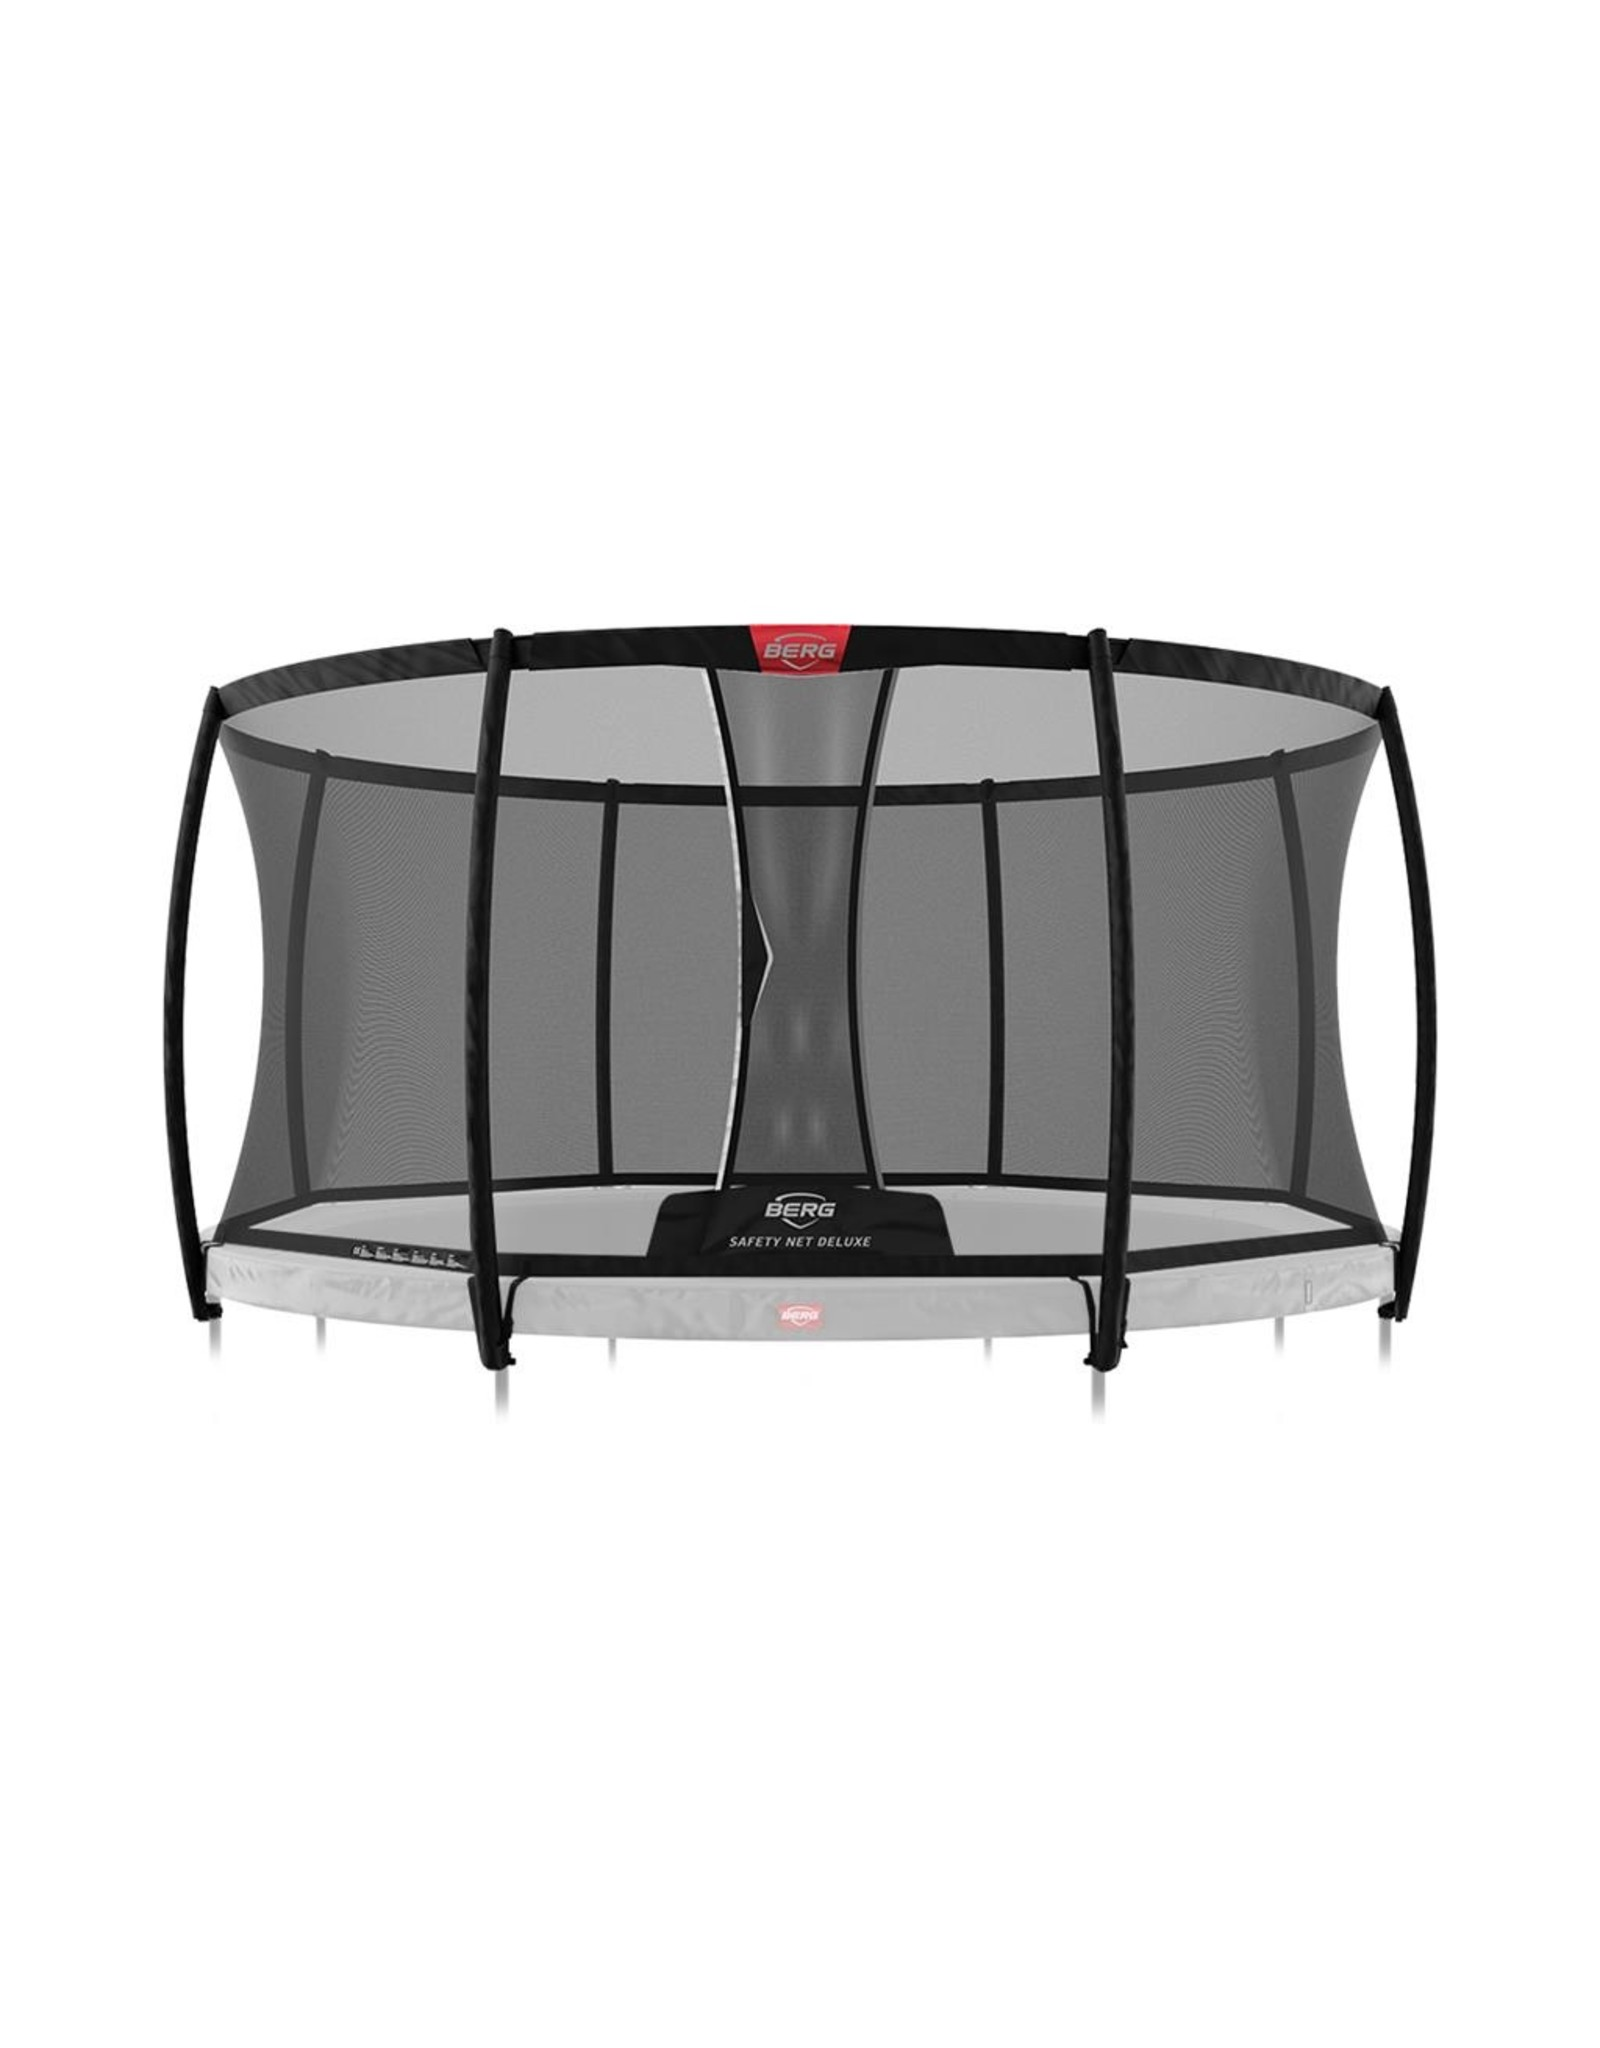 BERG BERG Safety Net Deluxe 380